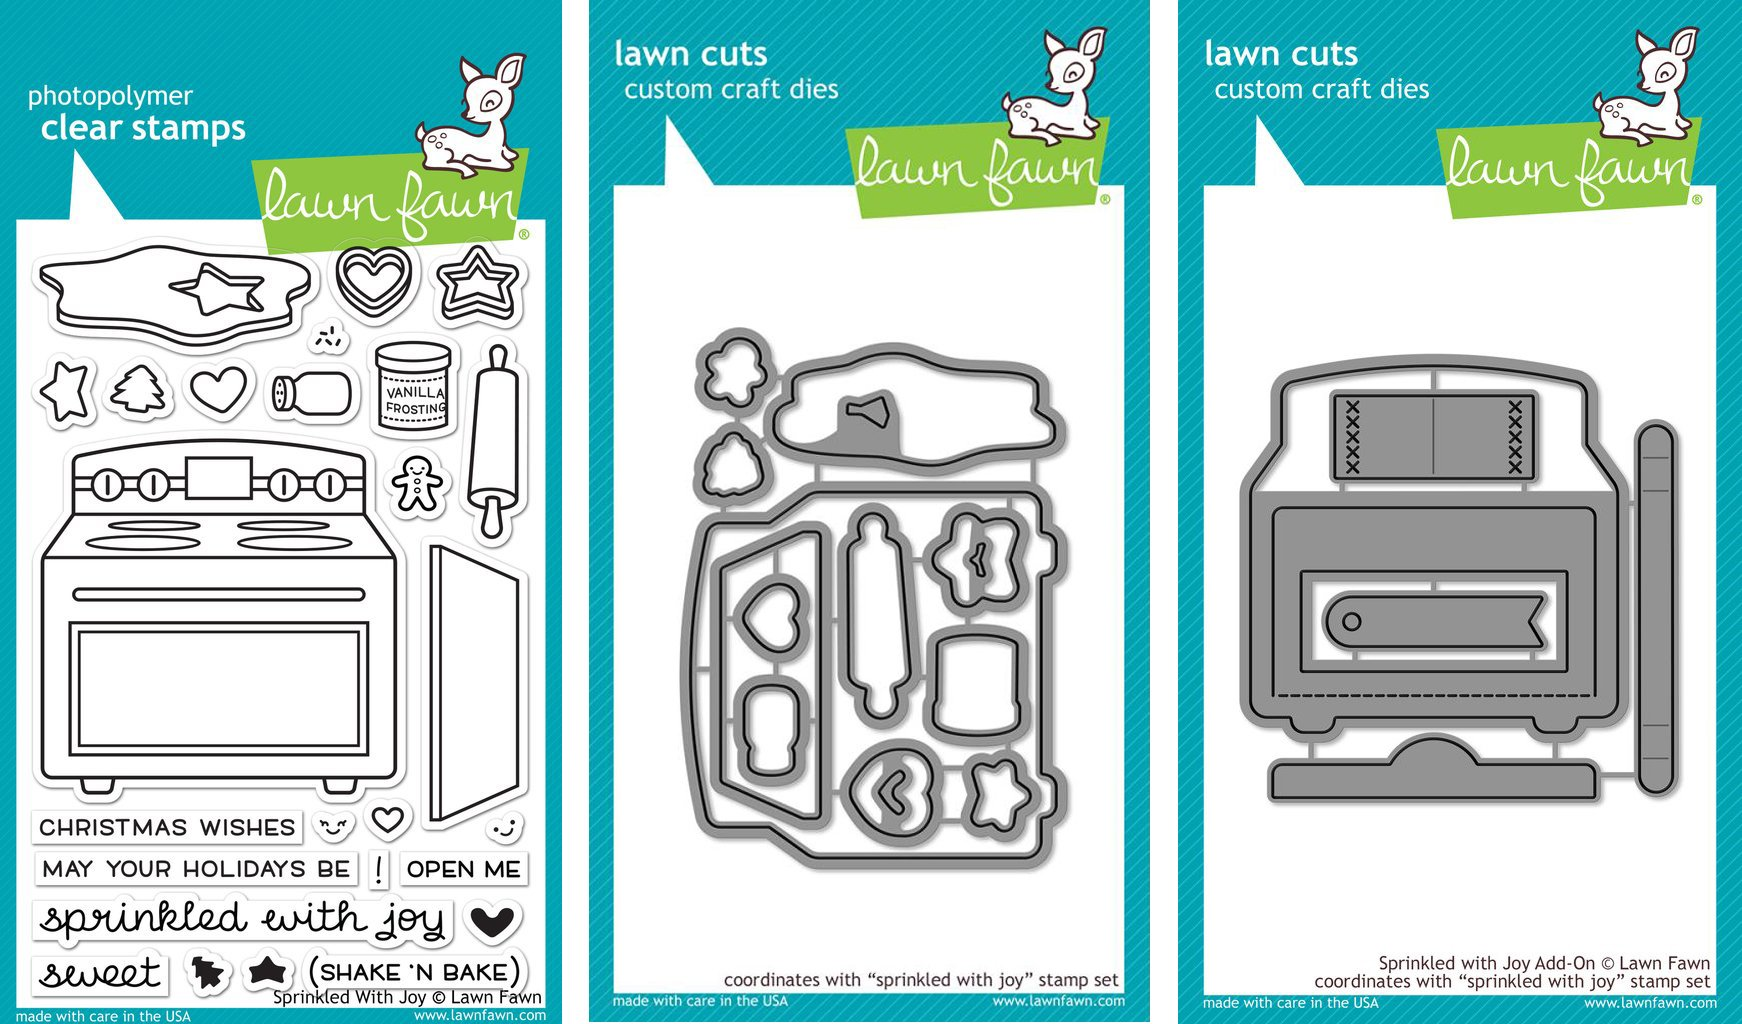 Lawn Fawn Sprinkled With Joy Clear Stamp & Die Set - Includes One Stamp (LF1214) & Two Dies (LF1215 & LF1271) - Bundle Of 3